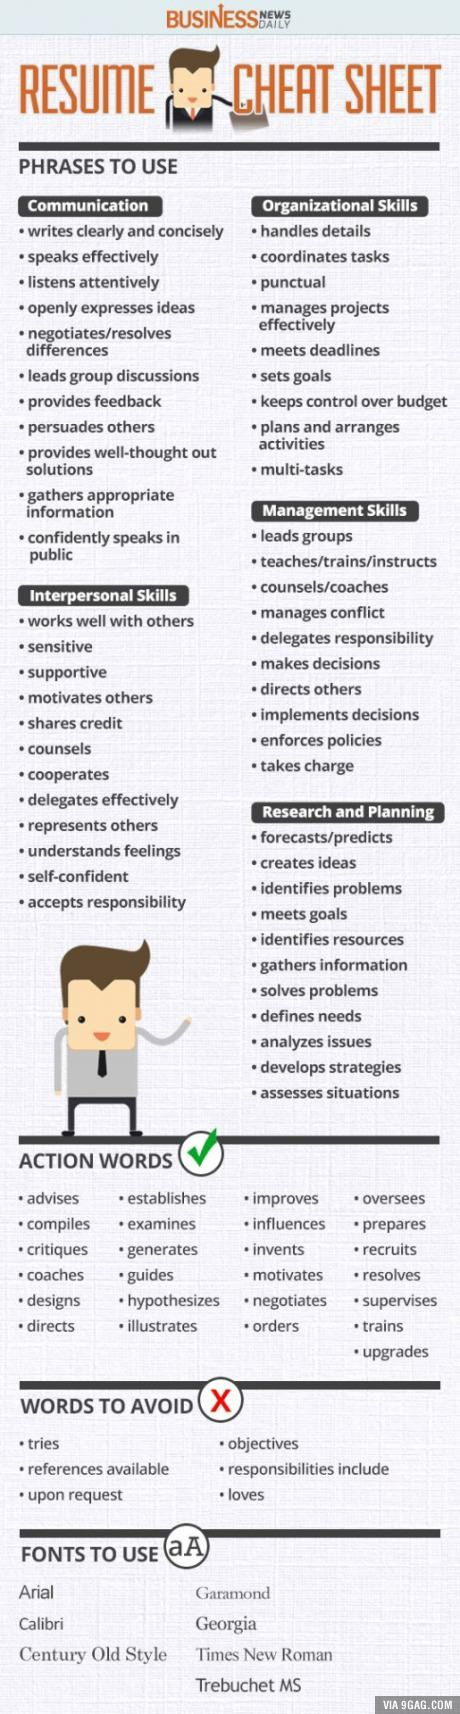 ideas about resume skills resume format job the only resume cheat sheet you will ever need is putting your resume together making you question if you should apply for a job